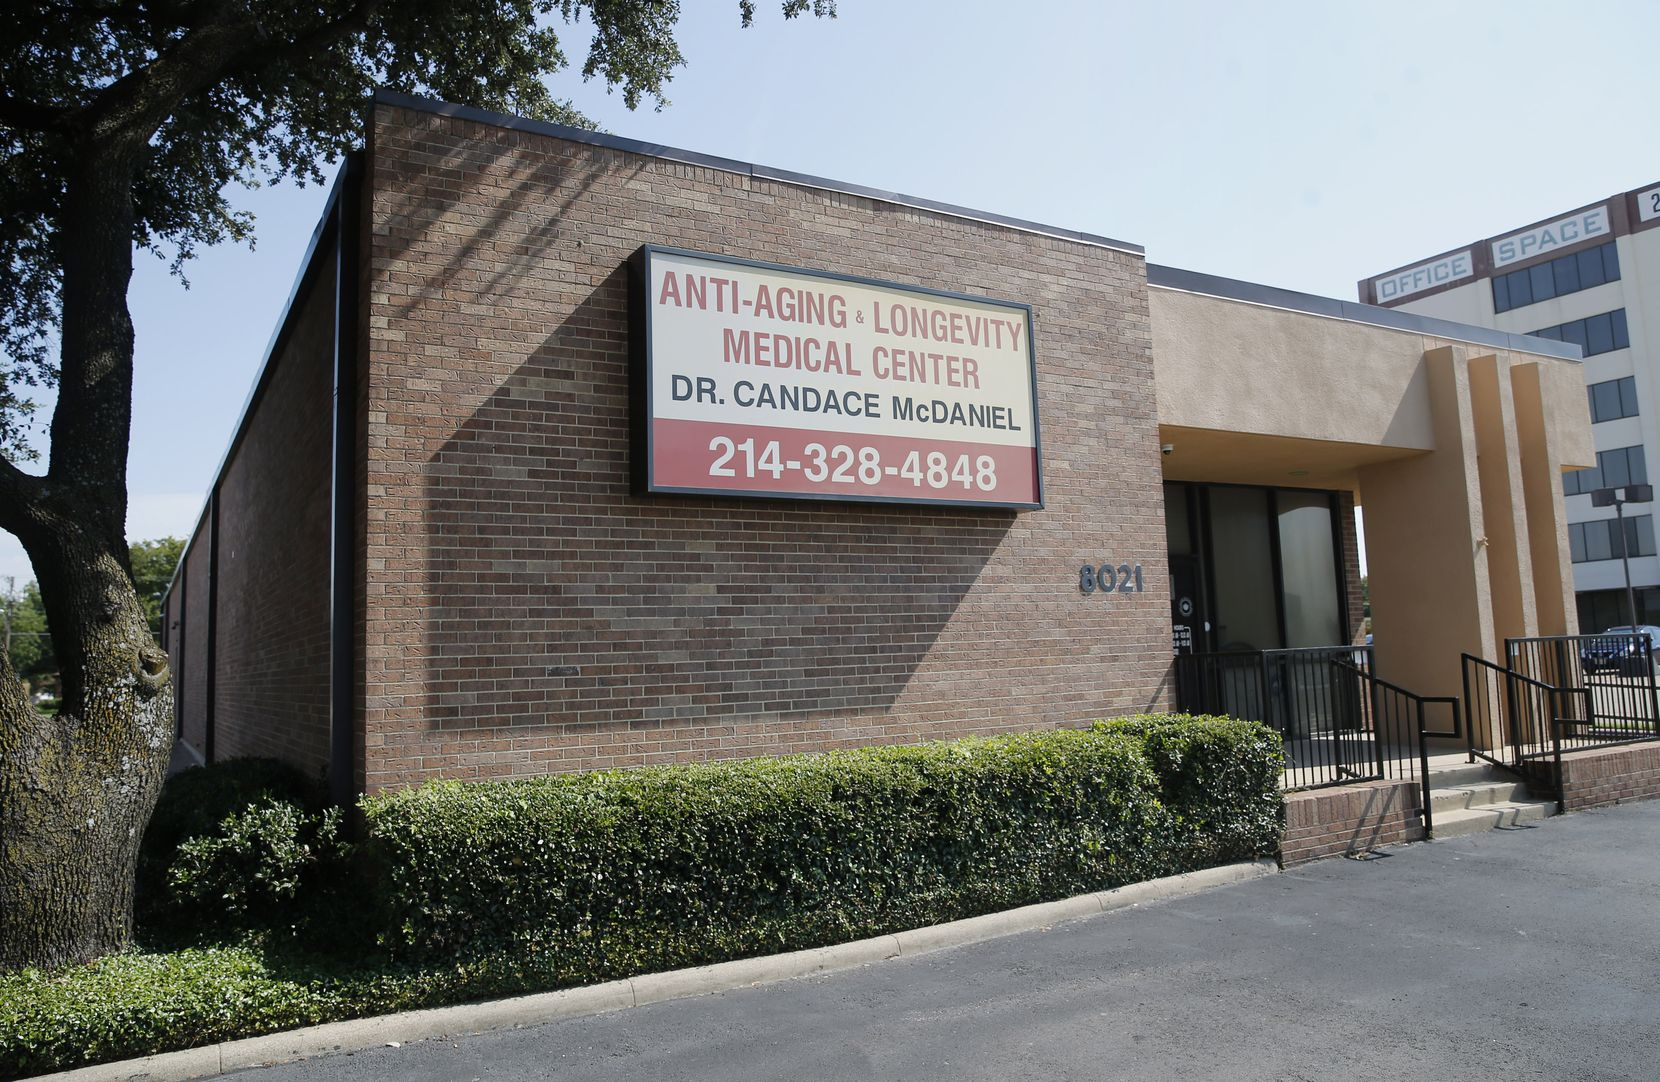 The Anti-Aging and Longevity Medical Center in Dallas on Thursday, August 7, 2020. This local addiction treatment center has stayed open during the COVID-19 pandemic to provide patients with access to medications that treat opioid addiction. (Vernon Bryant/The Dallas Morning News)